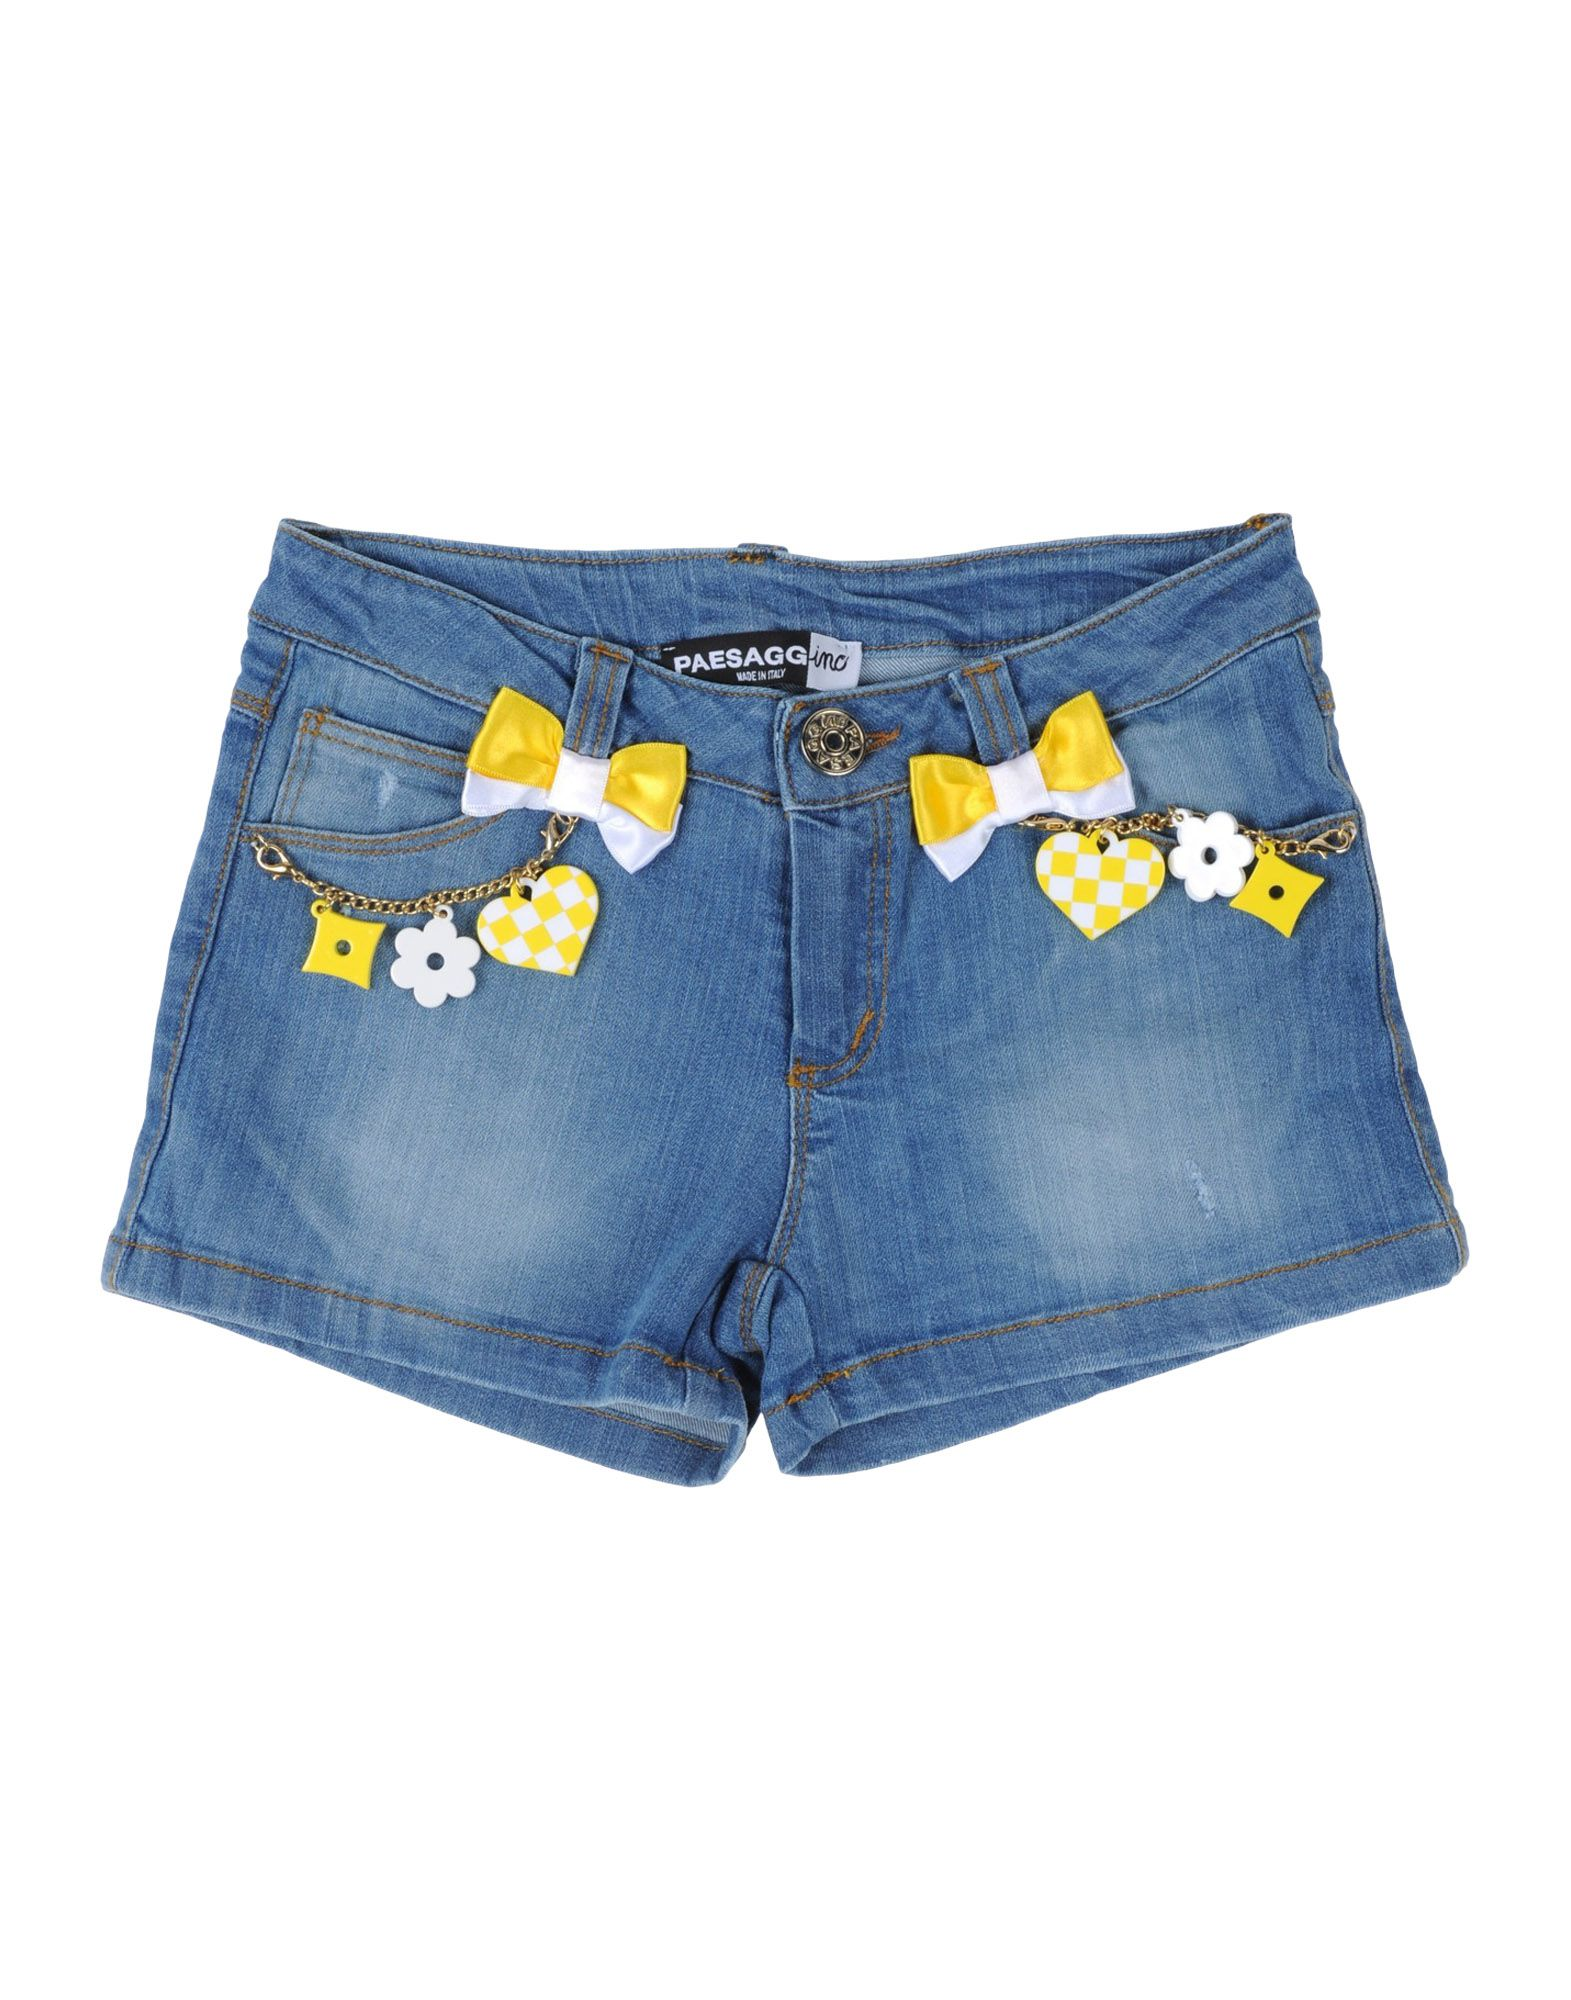 PAESAGGino Denim shorts